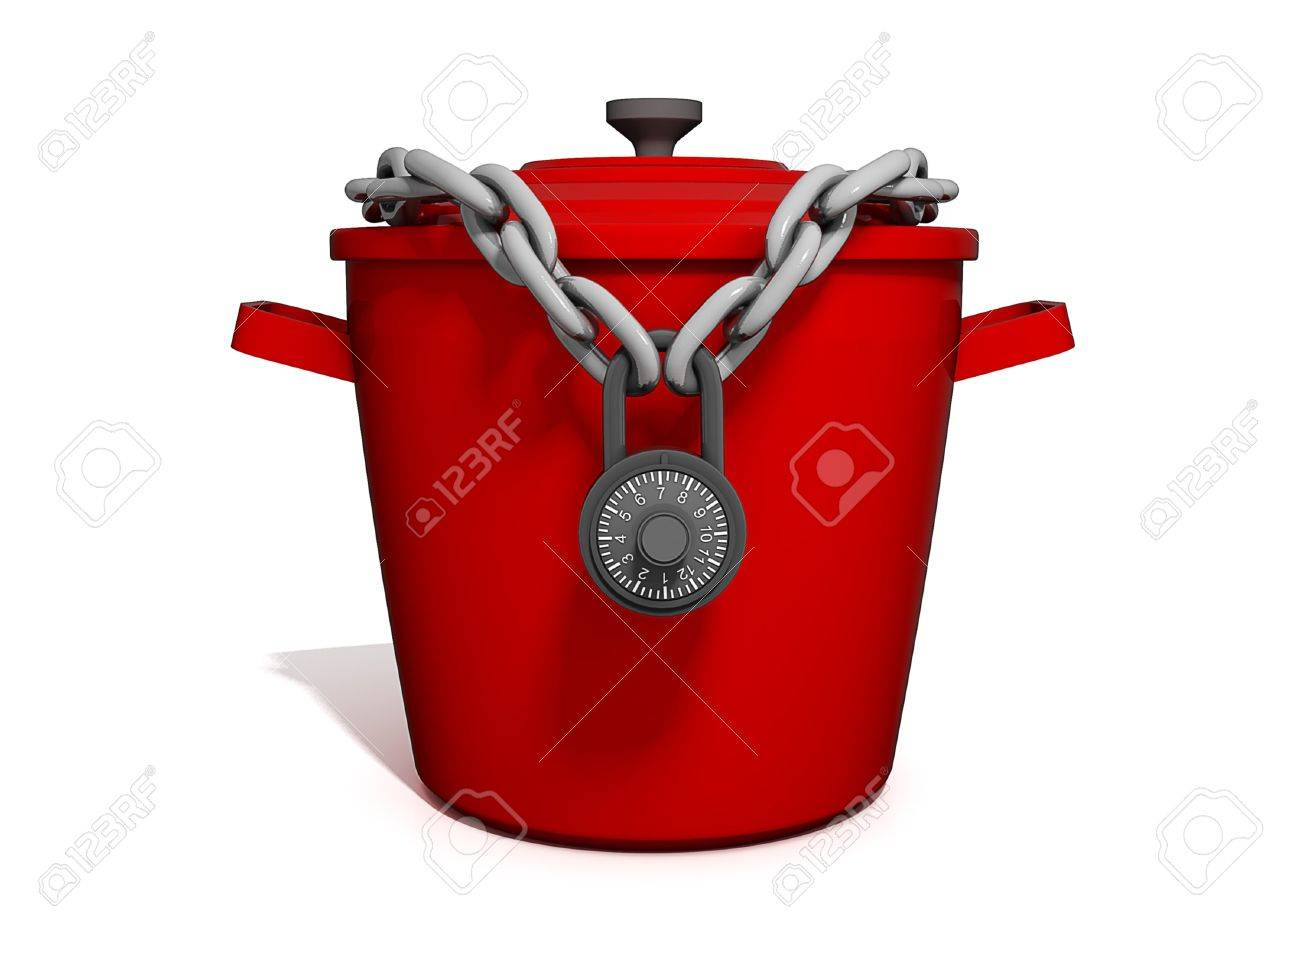 Isolated picture of a Cooking Pot with a lock around it. Stock Photo - 11291225